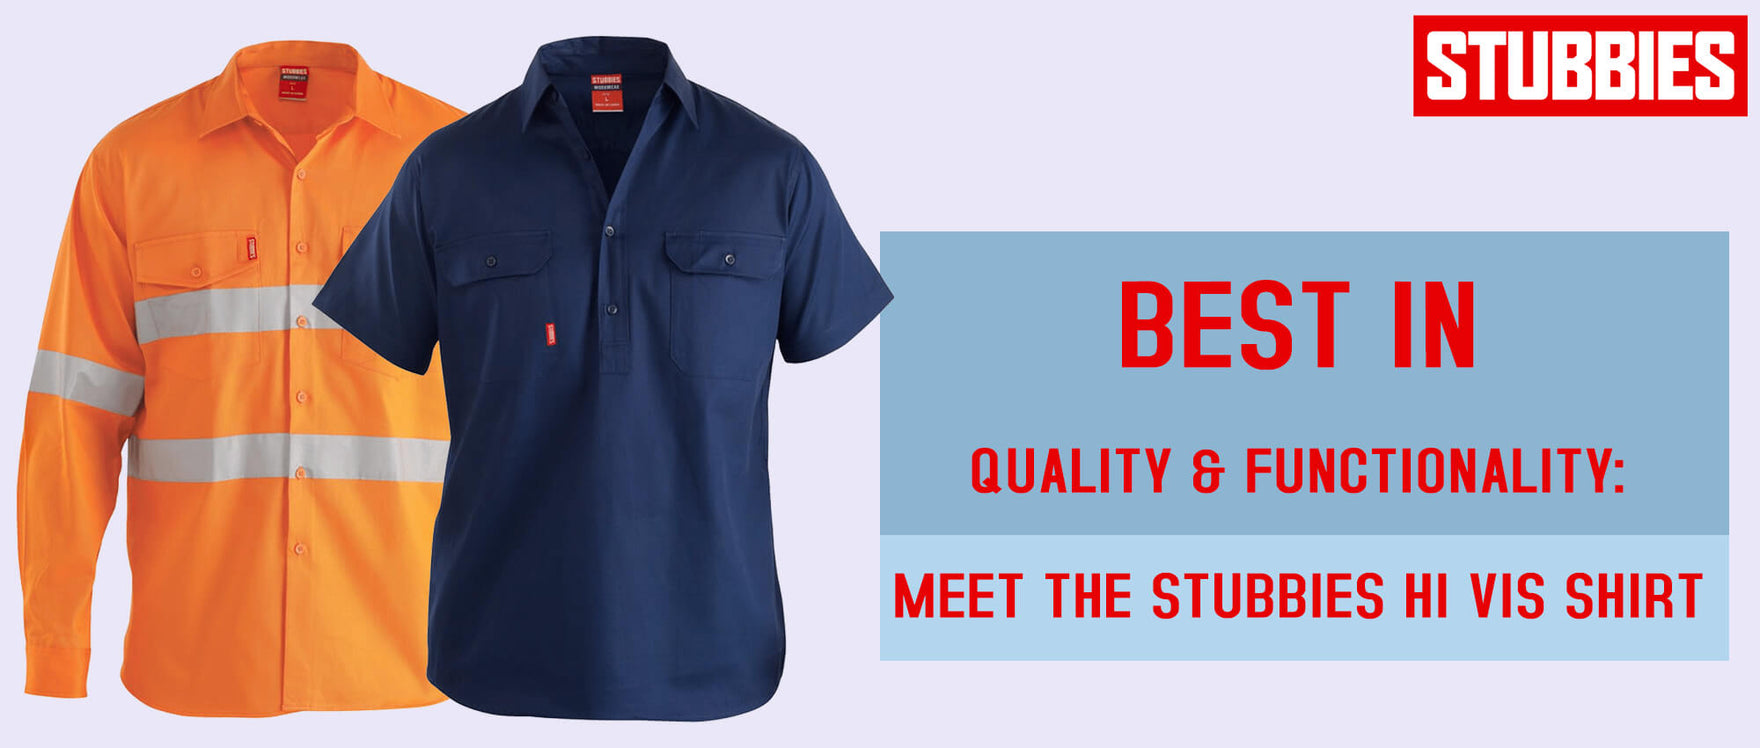 Best in Quality and Functionality: Meet the Stubbies Hi Vis Shirt